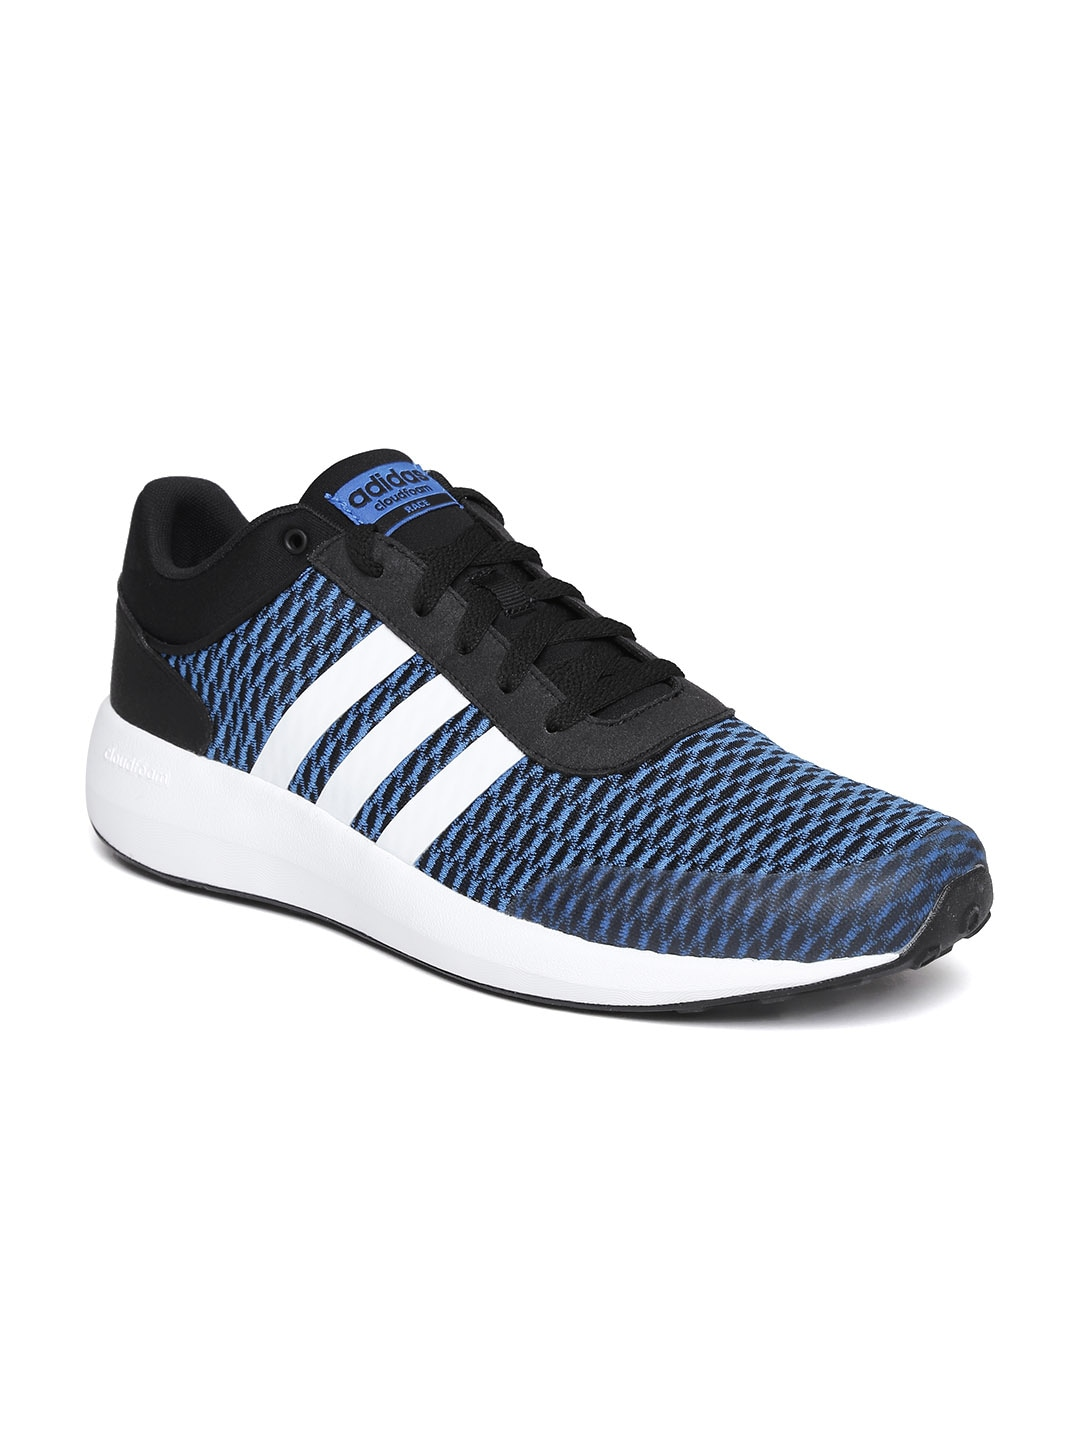 bb89a492fd81 ... where to buy adidas neo shoes buy adidas neo shoes online in india  0a072 e43db